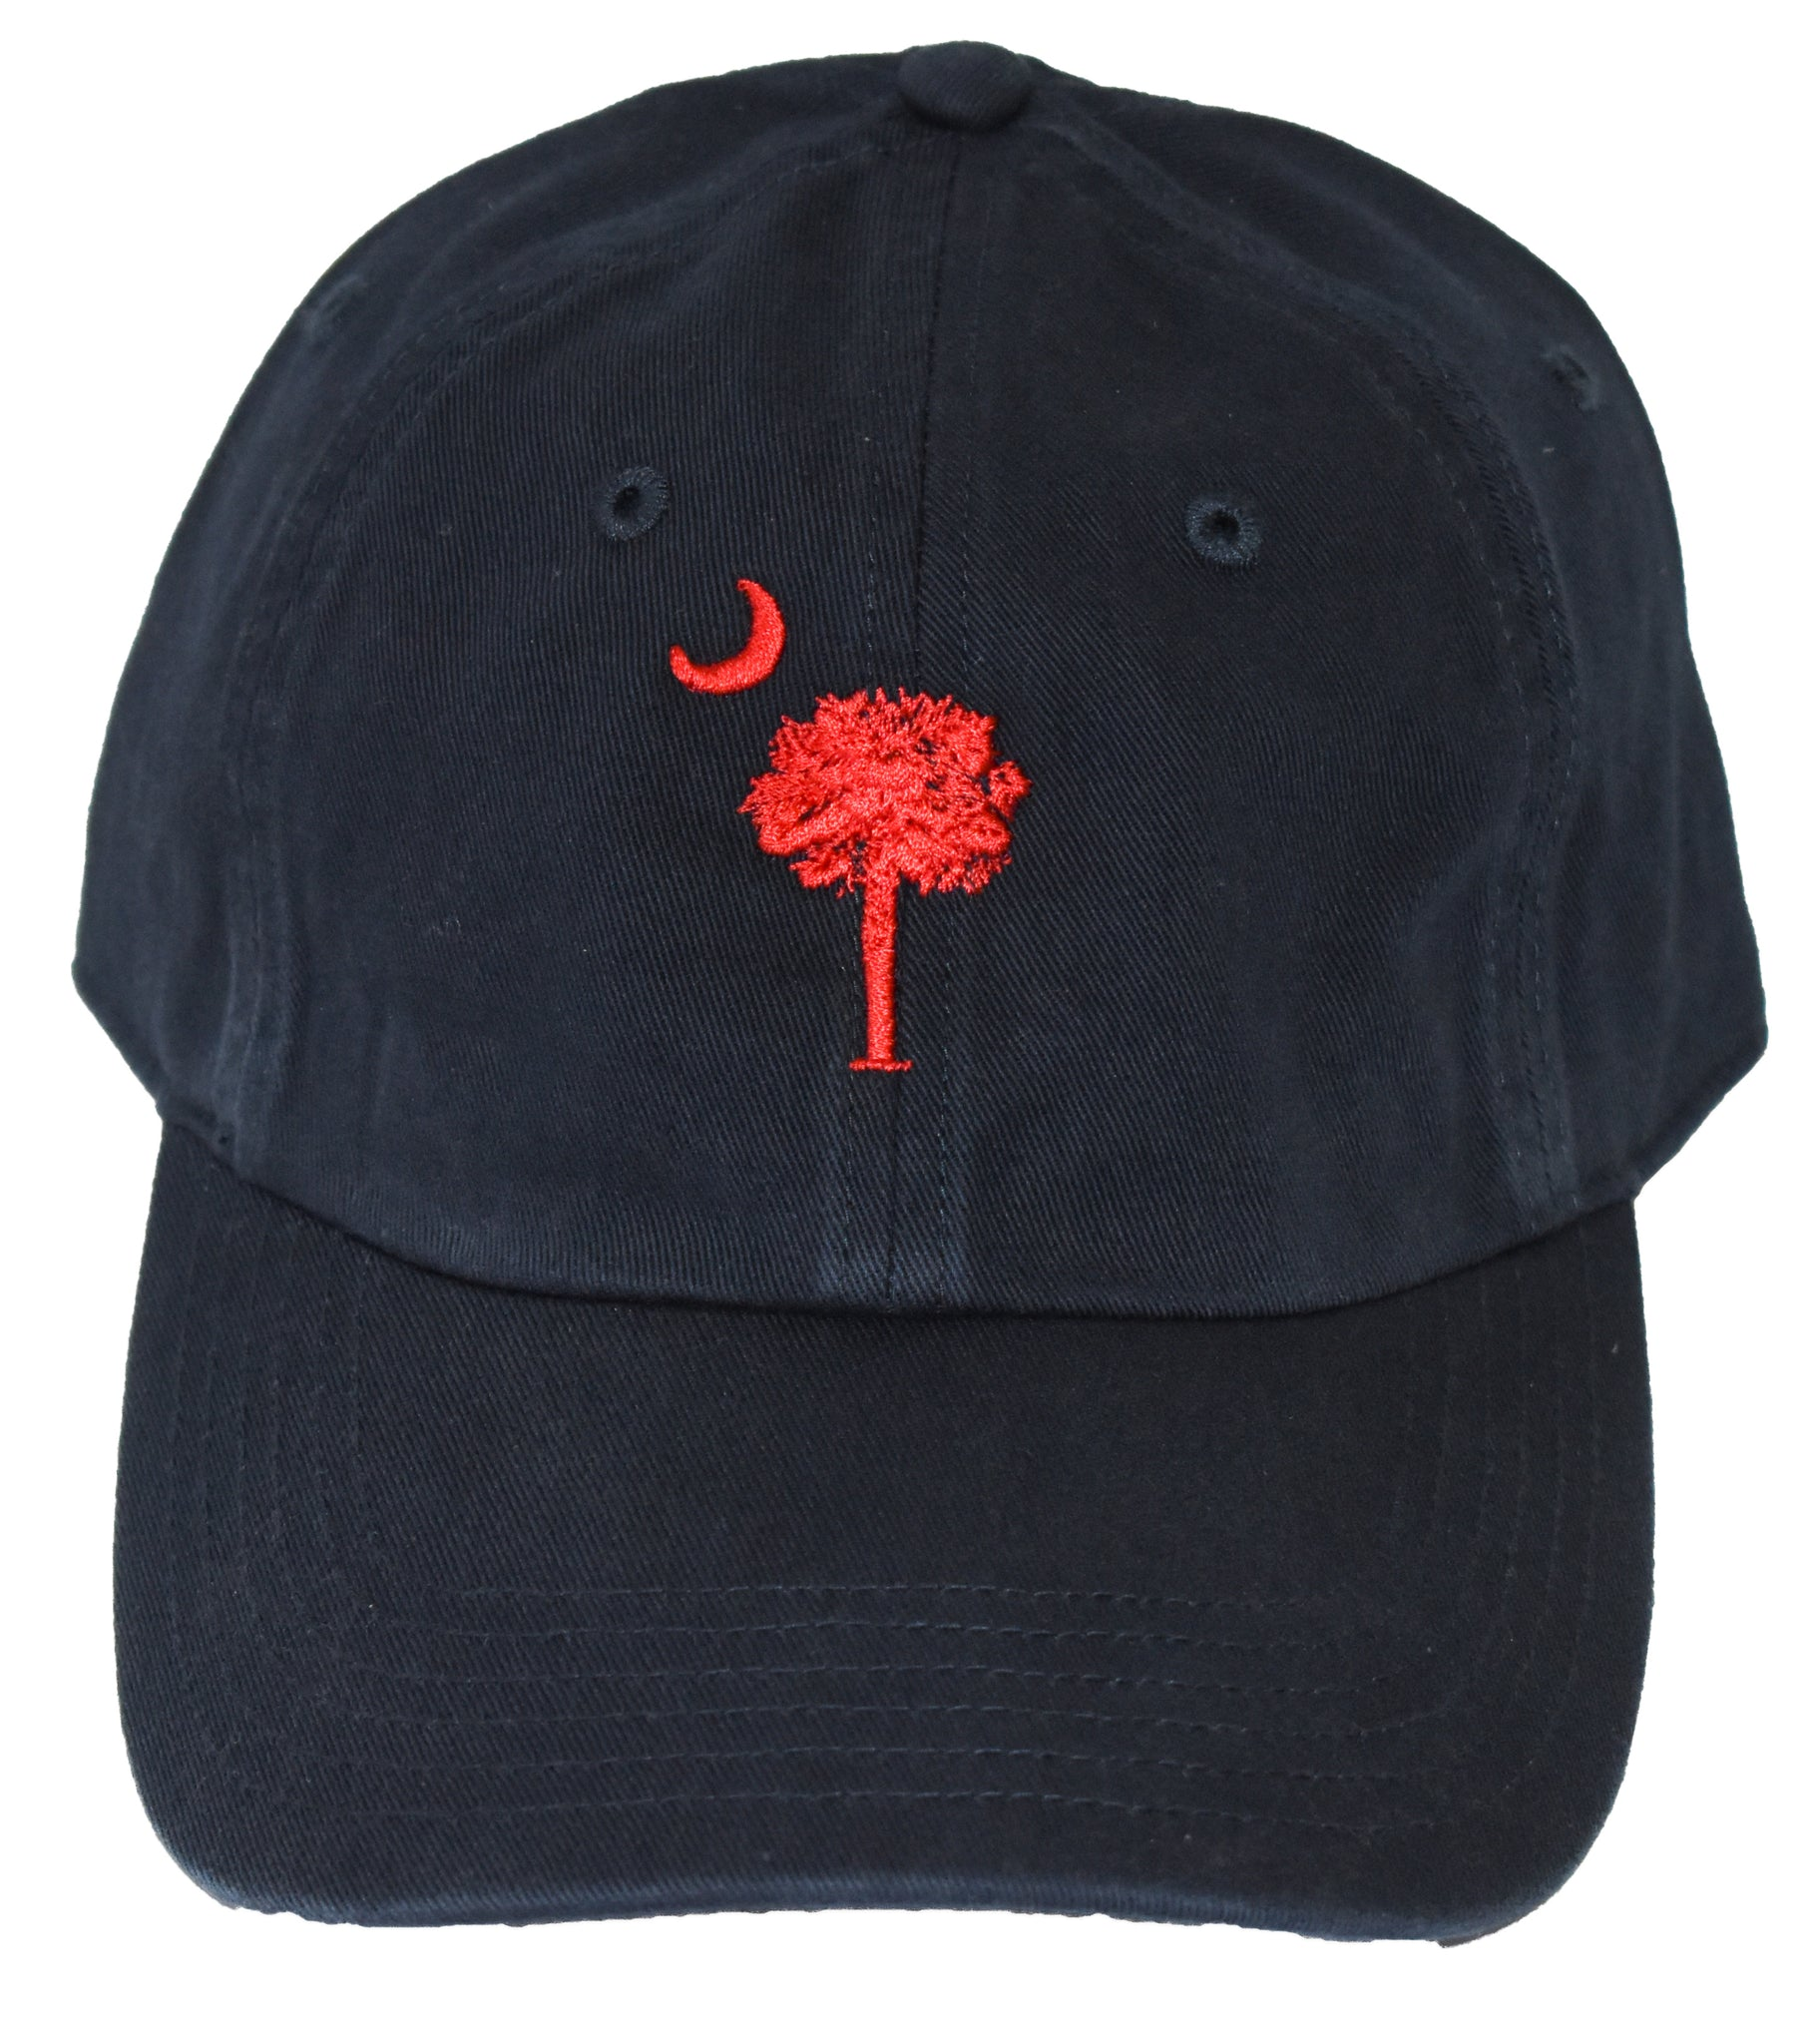 SC Palm Tree Embroidered Hat- Navy/Red